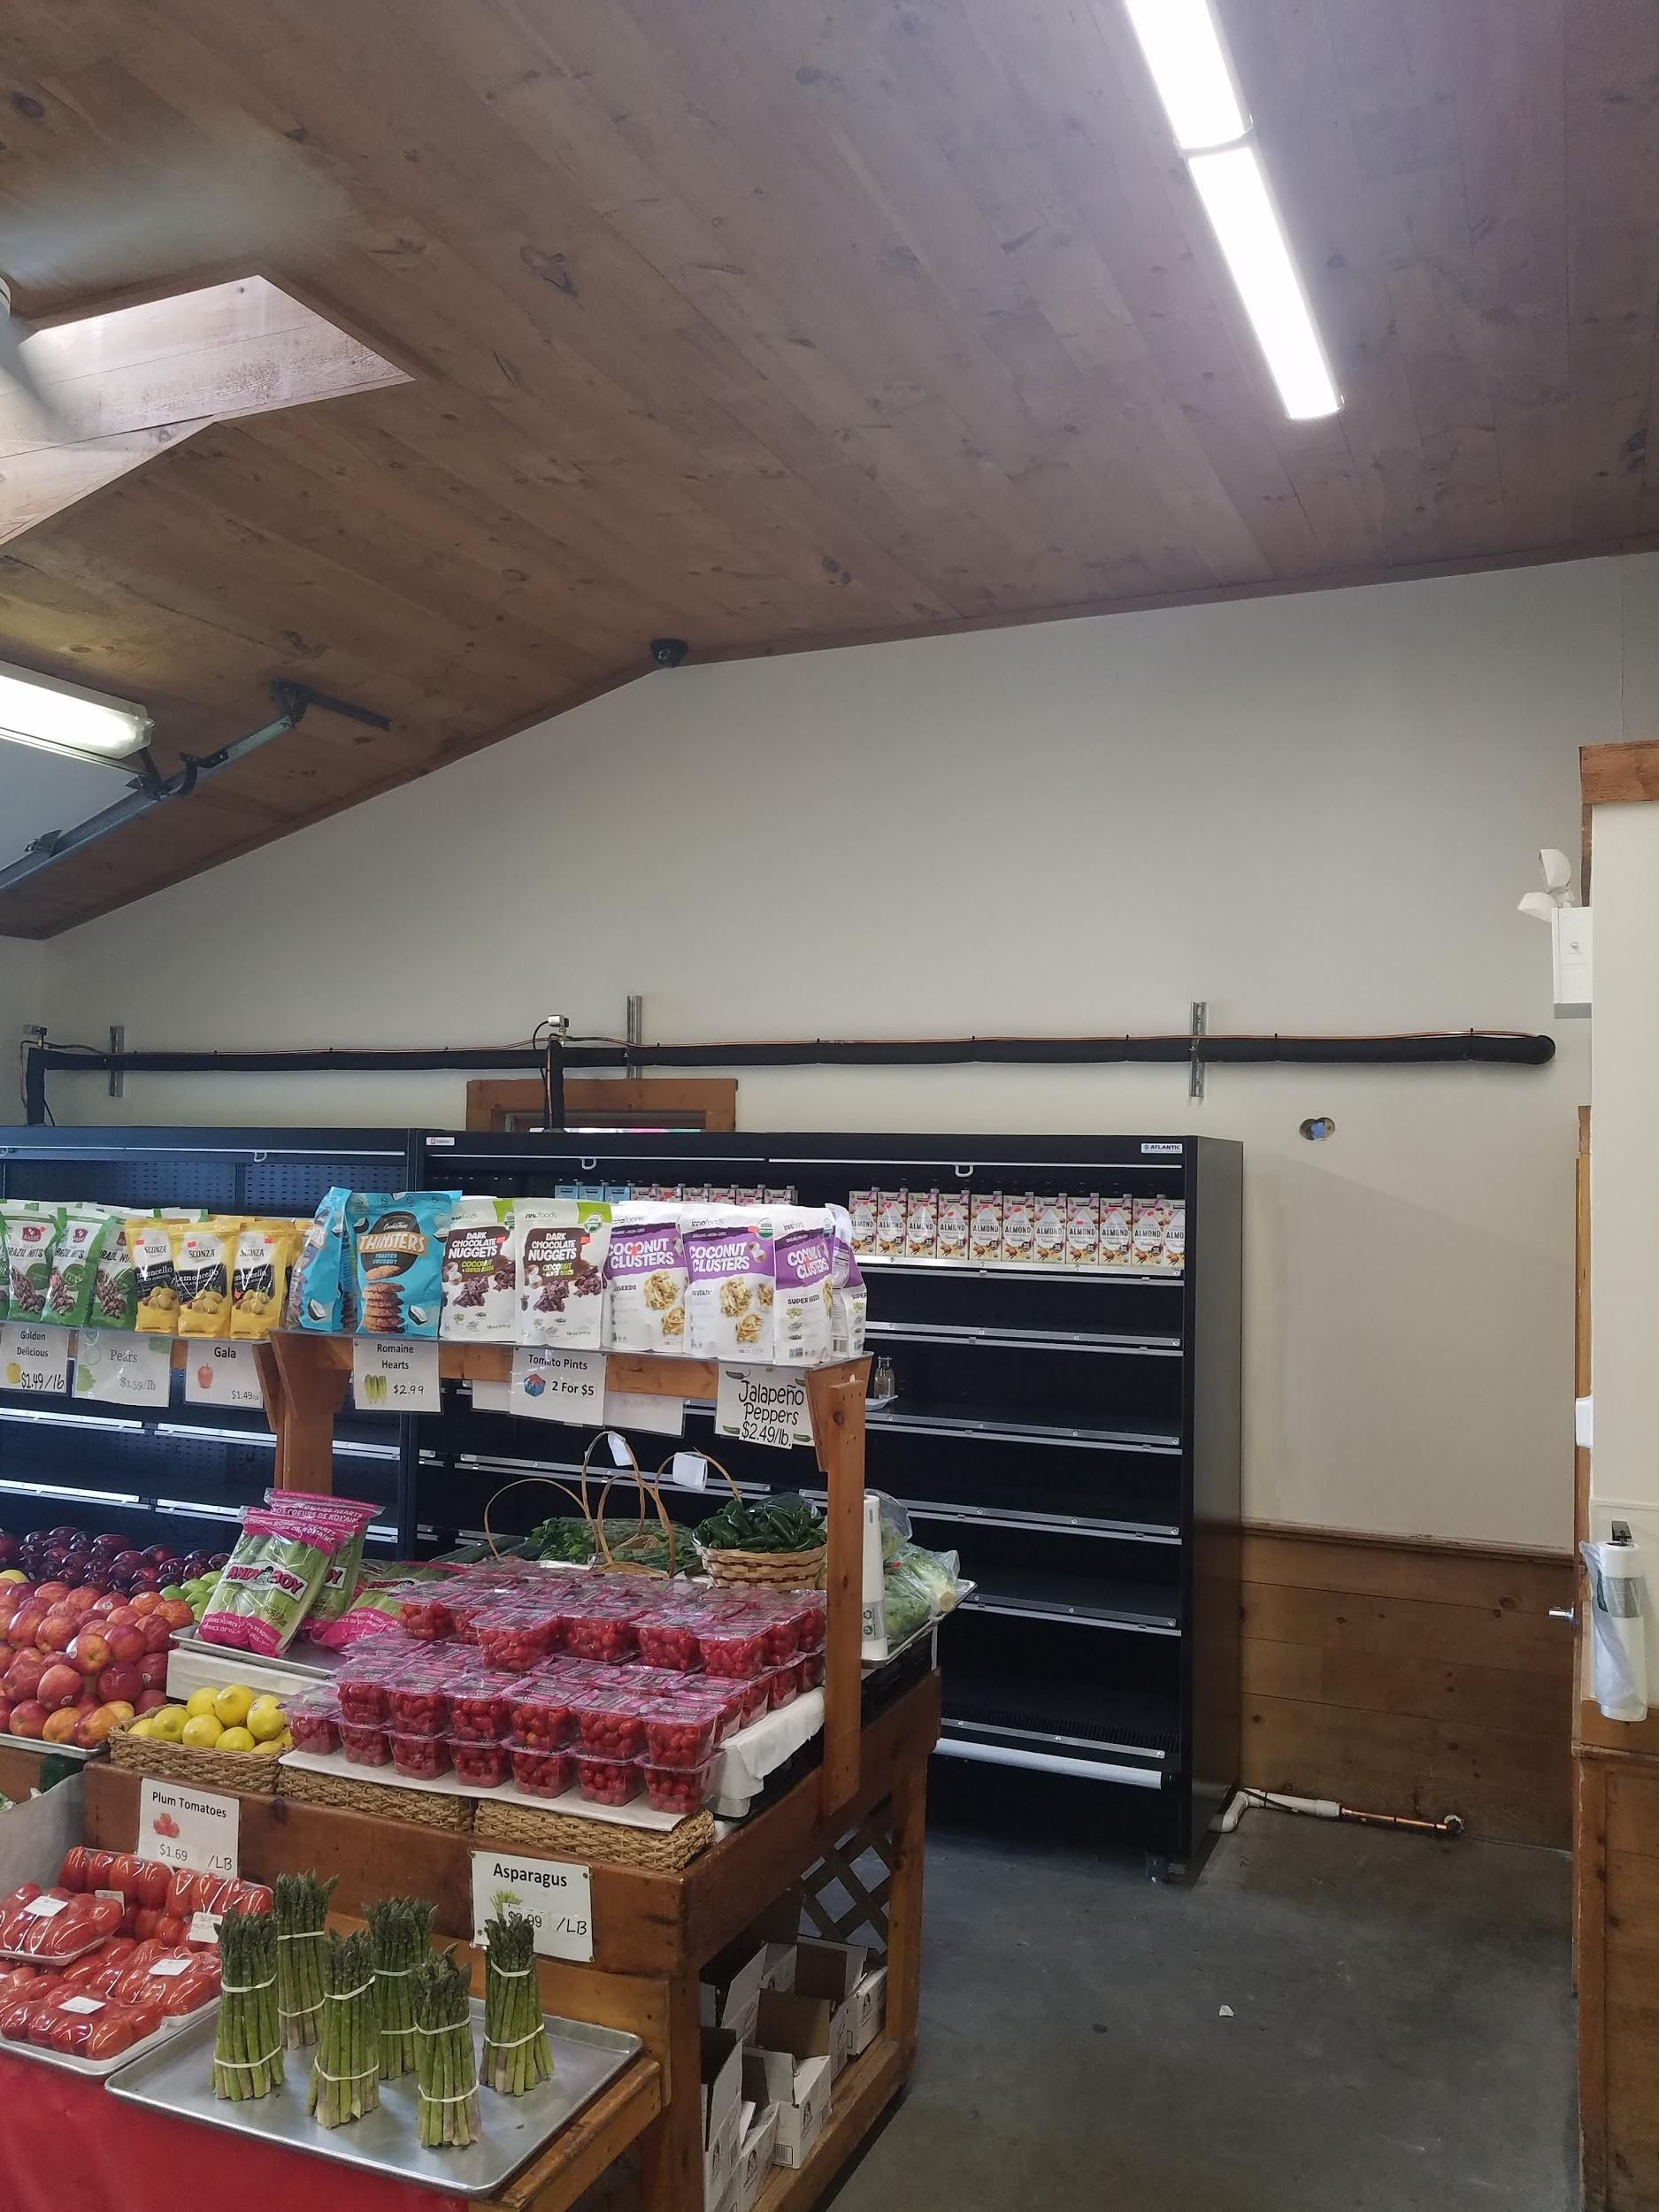 Example of how the refrigeration case and new piping looks inside the store.